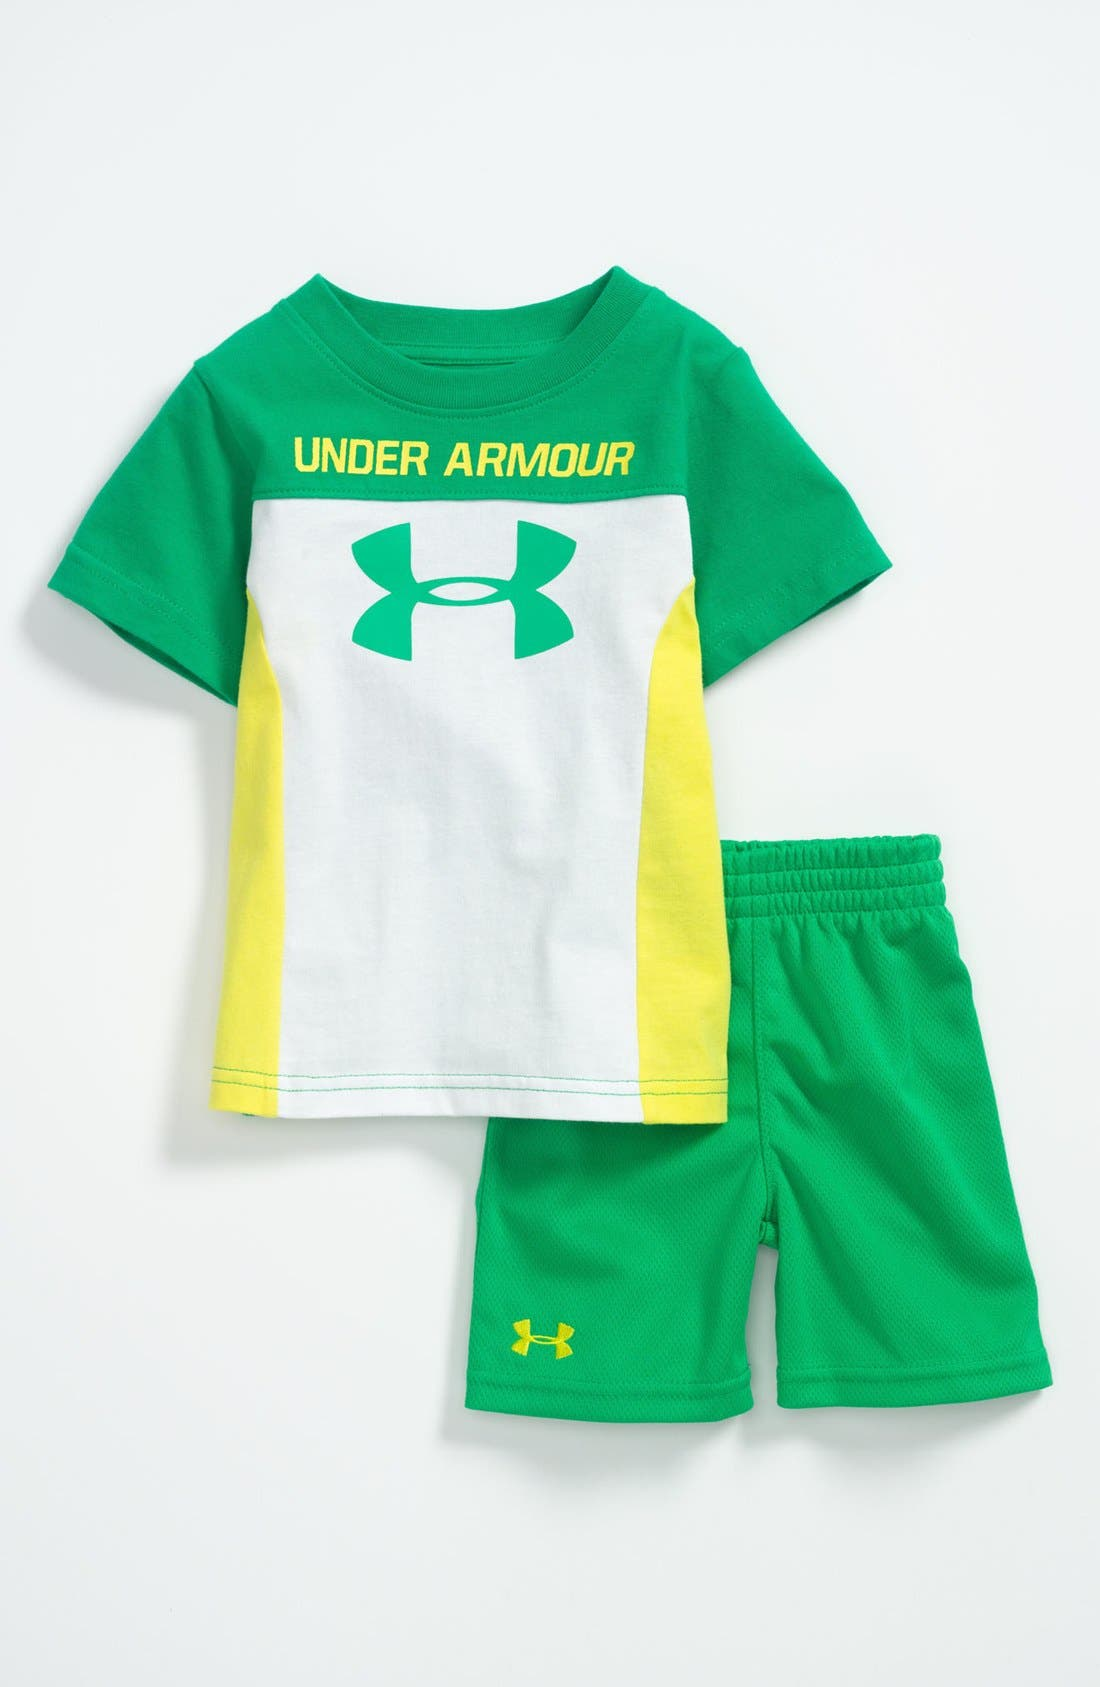 Alternate Image 1 Selected - Under Armour 'Mixed Media' T-Shirt & Shorts (Baby)